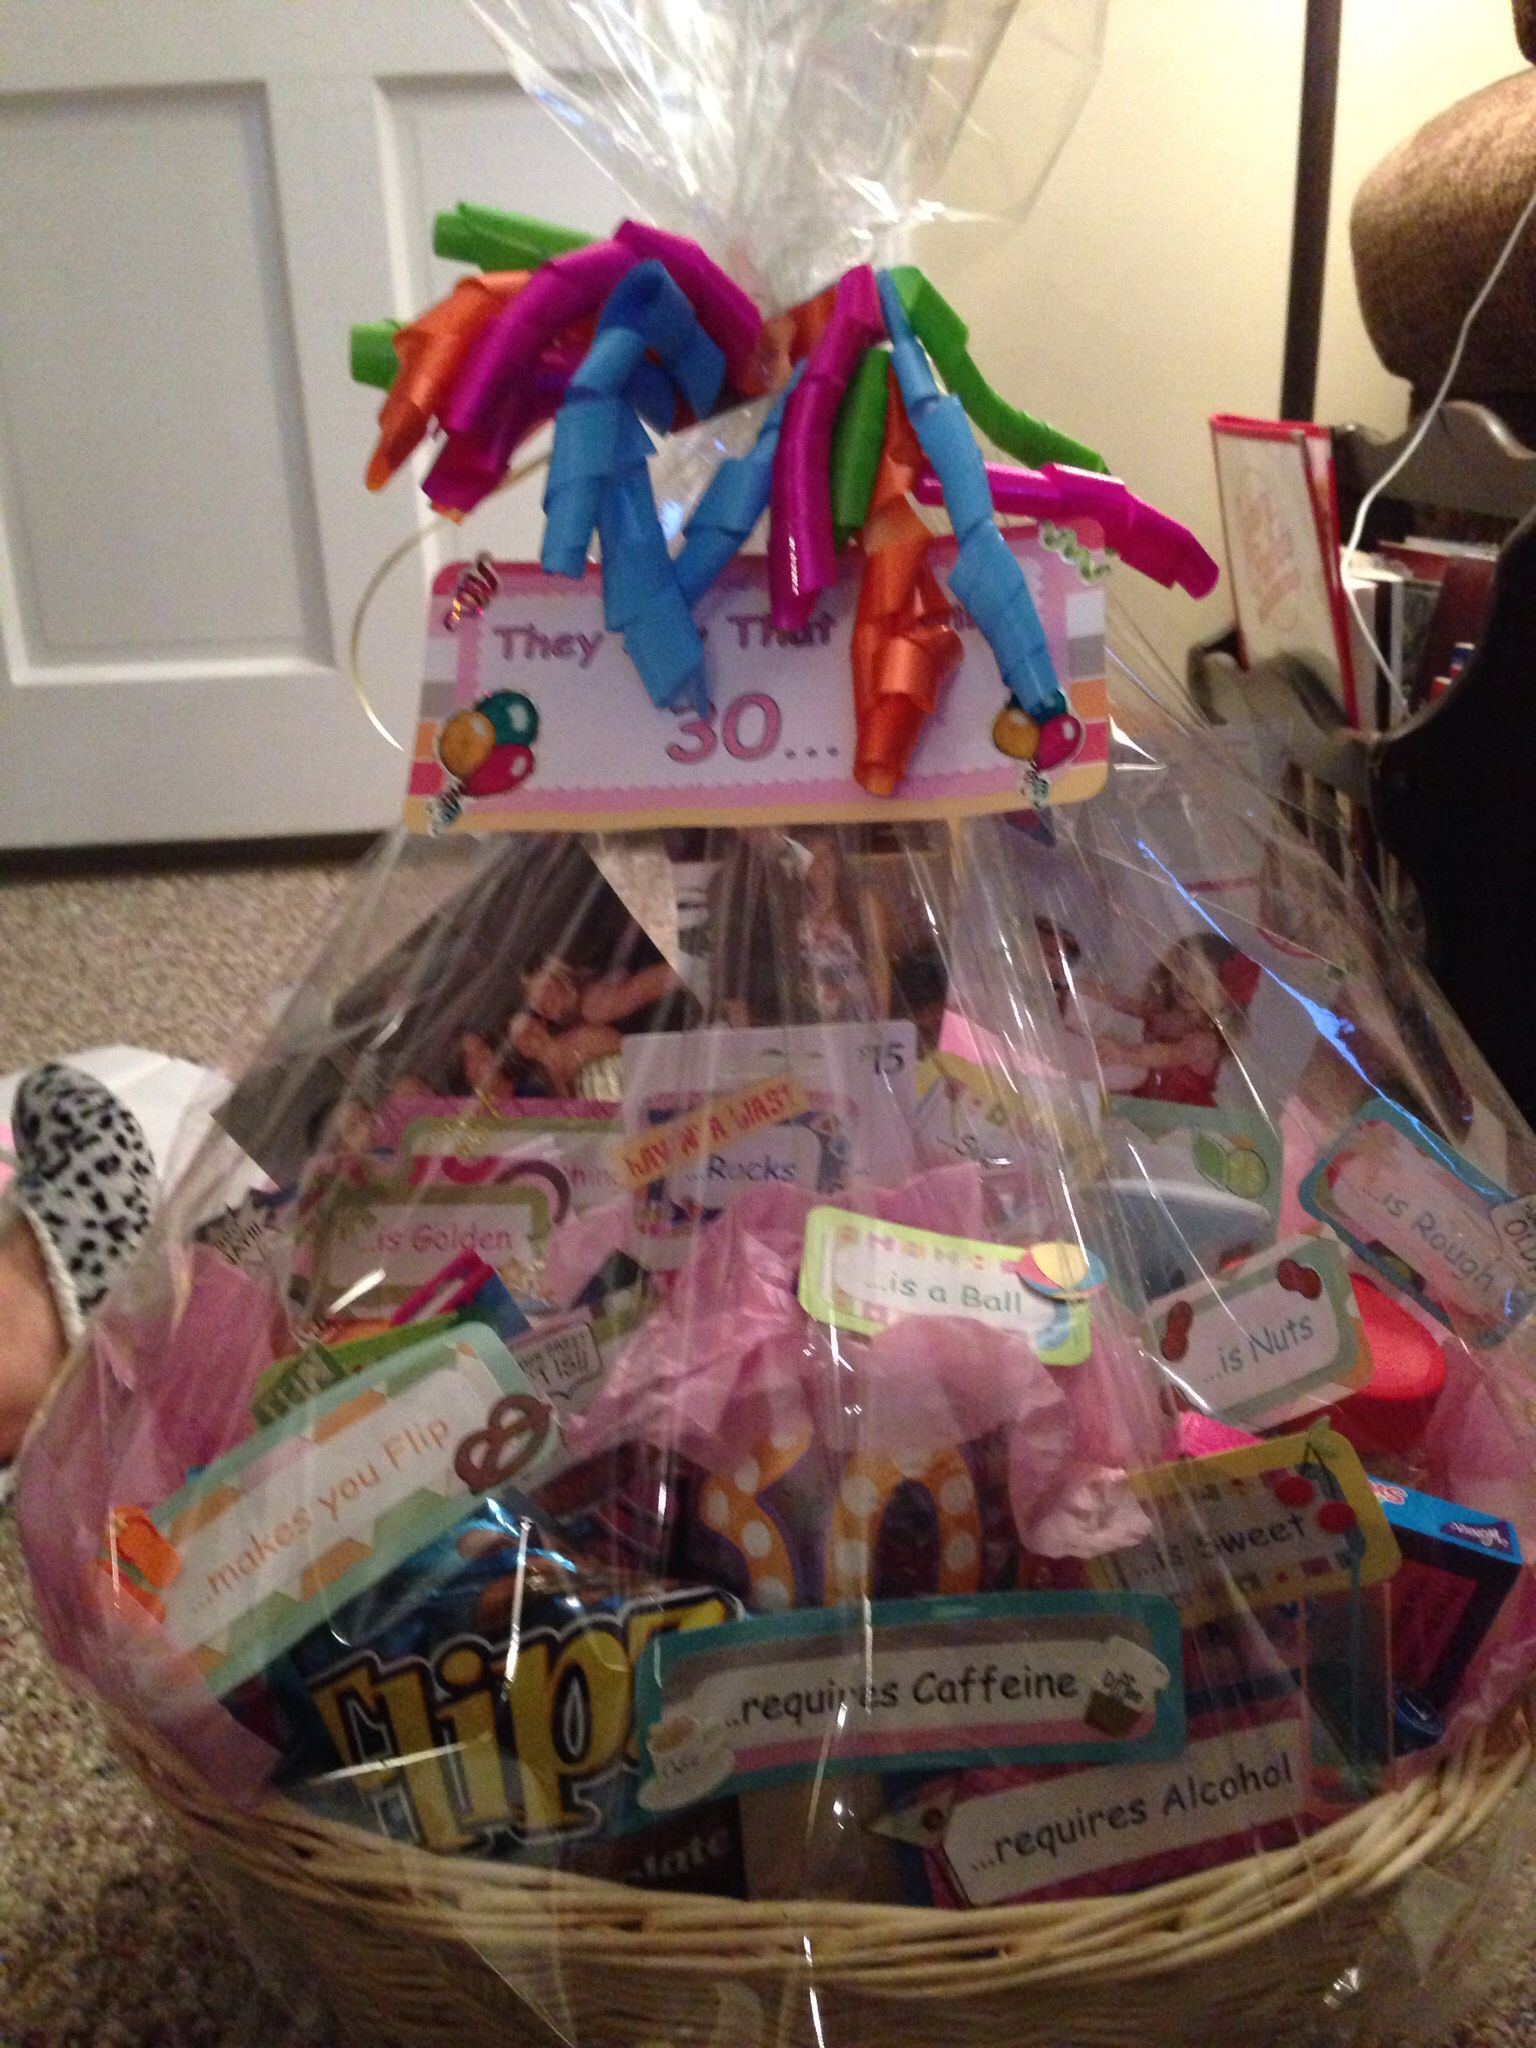 30th birthday basket. They say turning 30... | 30th ...